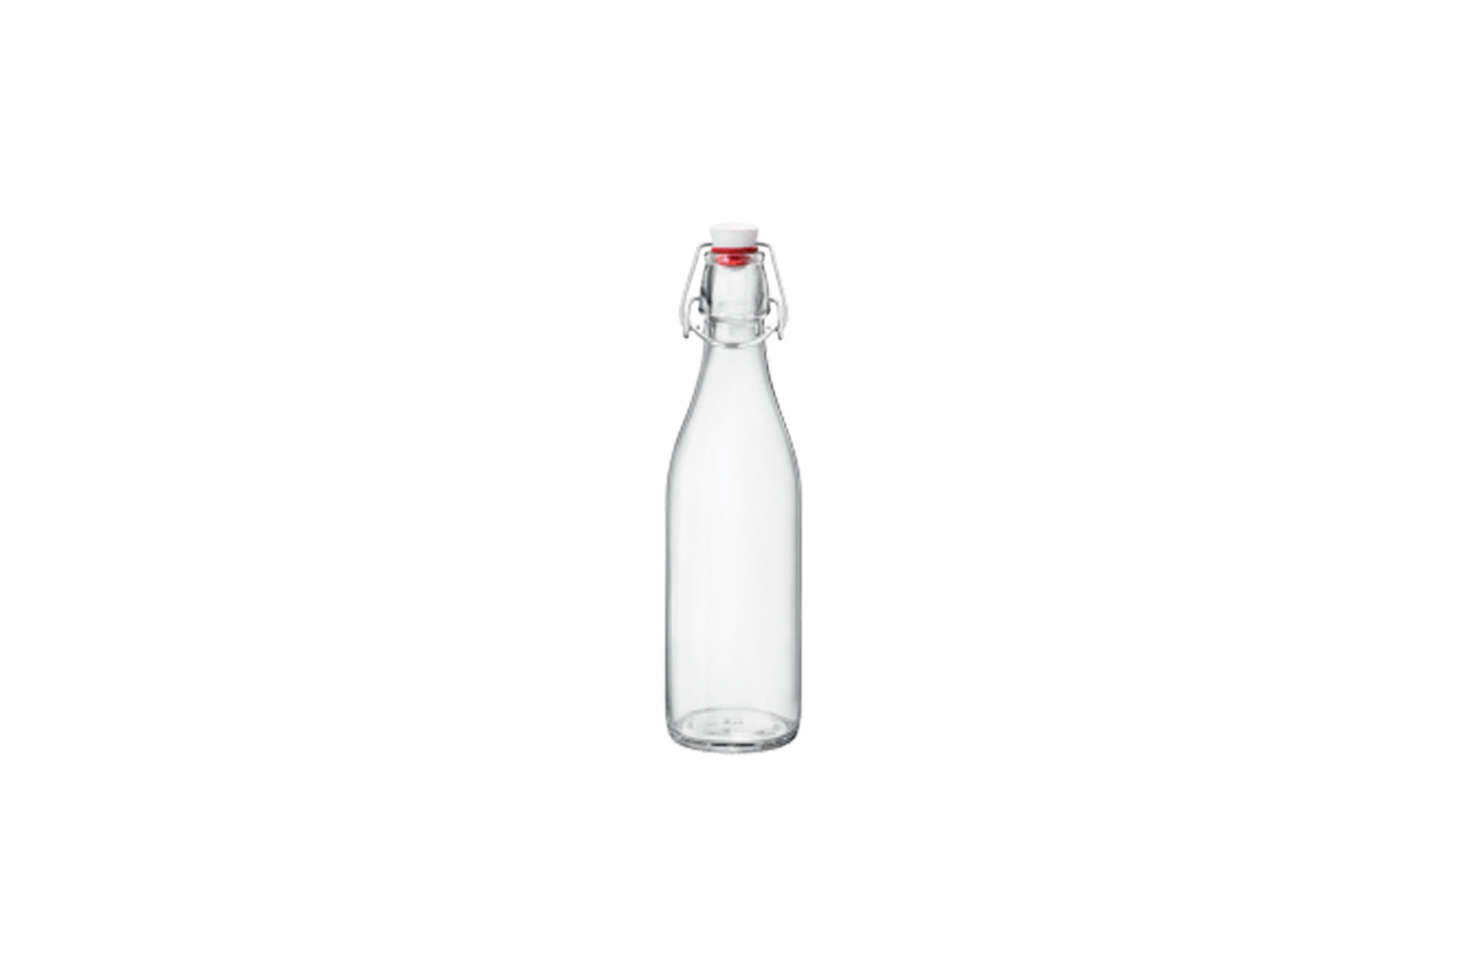 The classic Italian Bormioli Rocco Giara Clear Glass Bottle can be used to serve water and other drinks, as a vase, and storage bottle; $7.51 on Amazon.